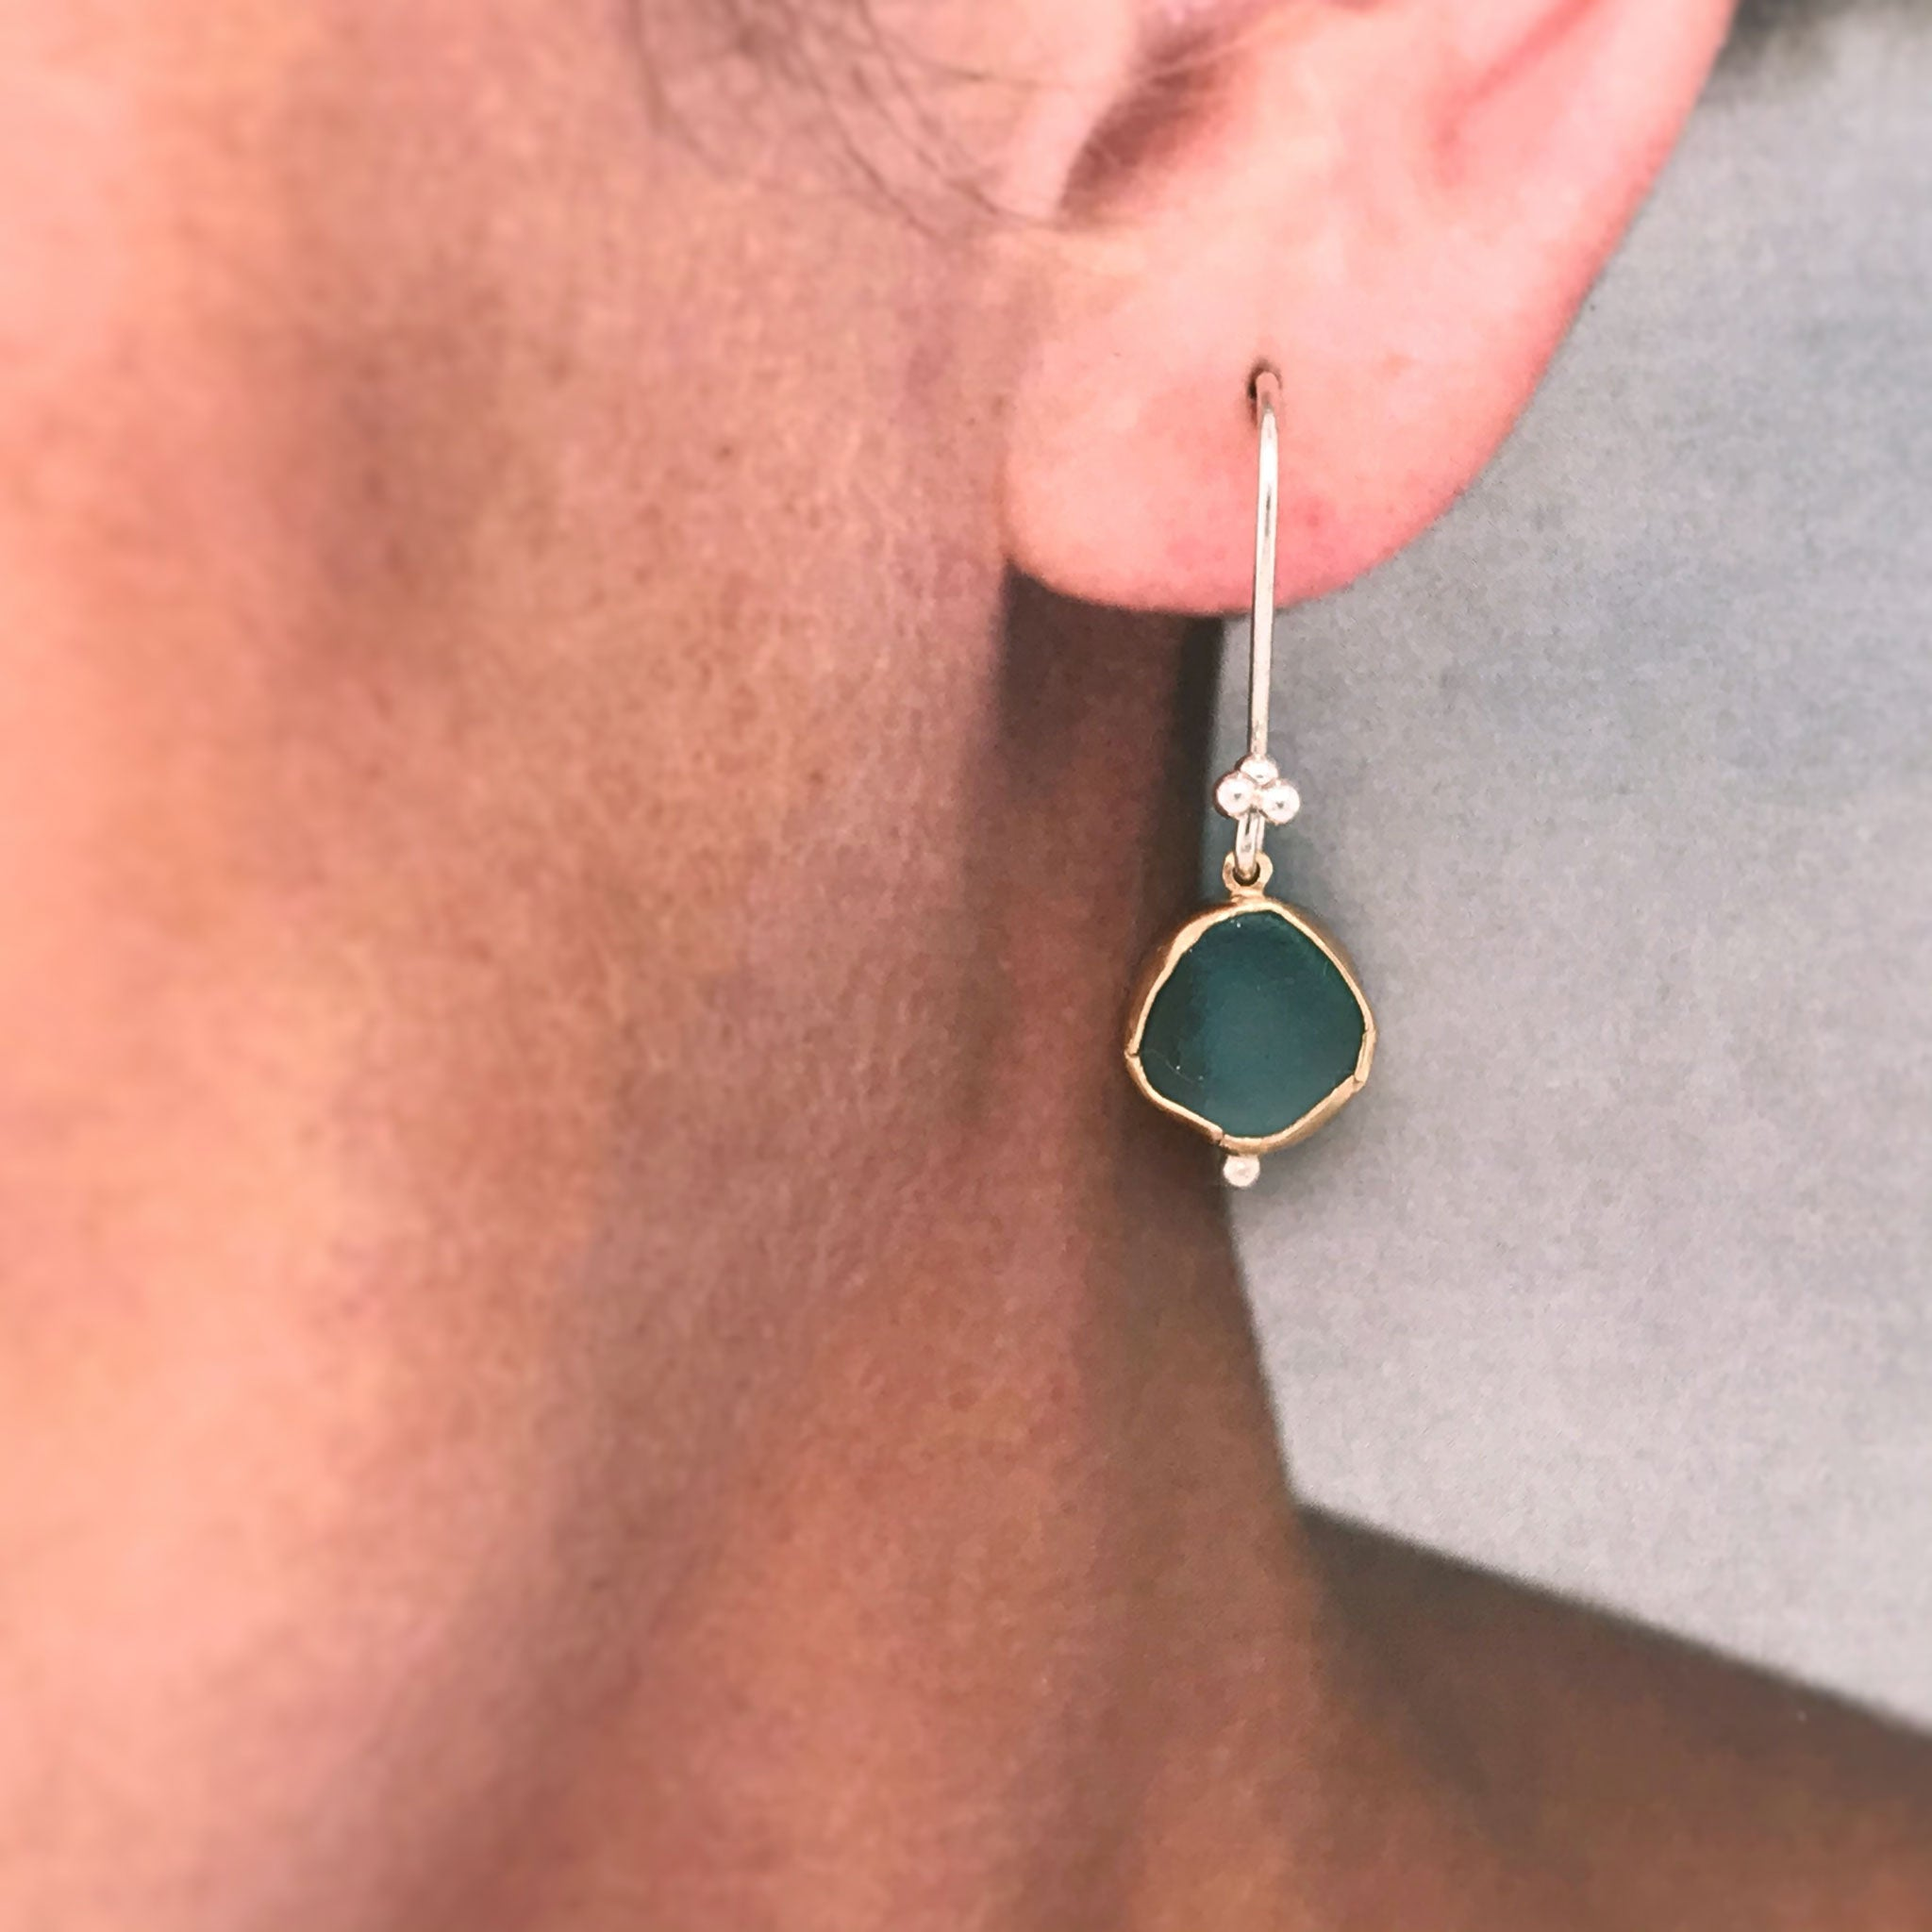 aqua seaglass earrings bezel set in 14k gold hung on silver hooks Kriket Broadhurst jewellery